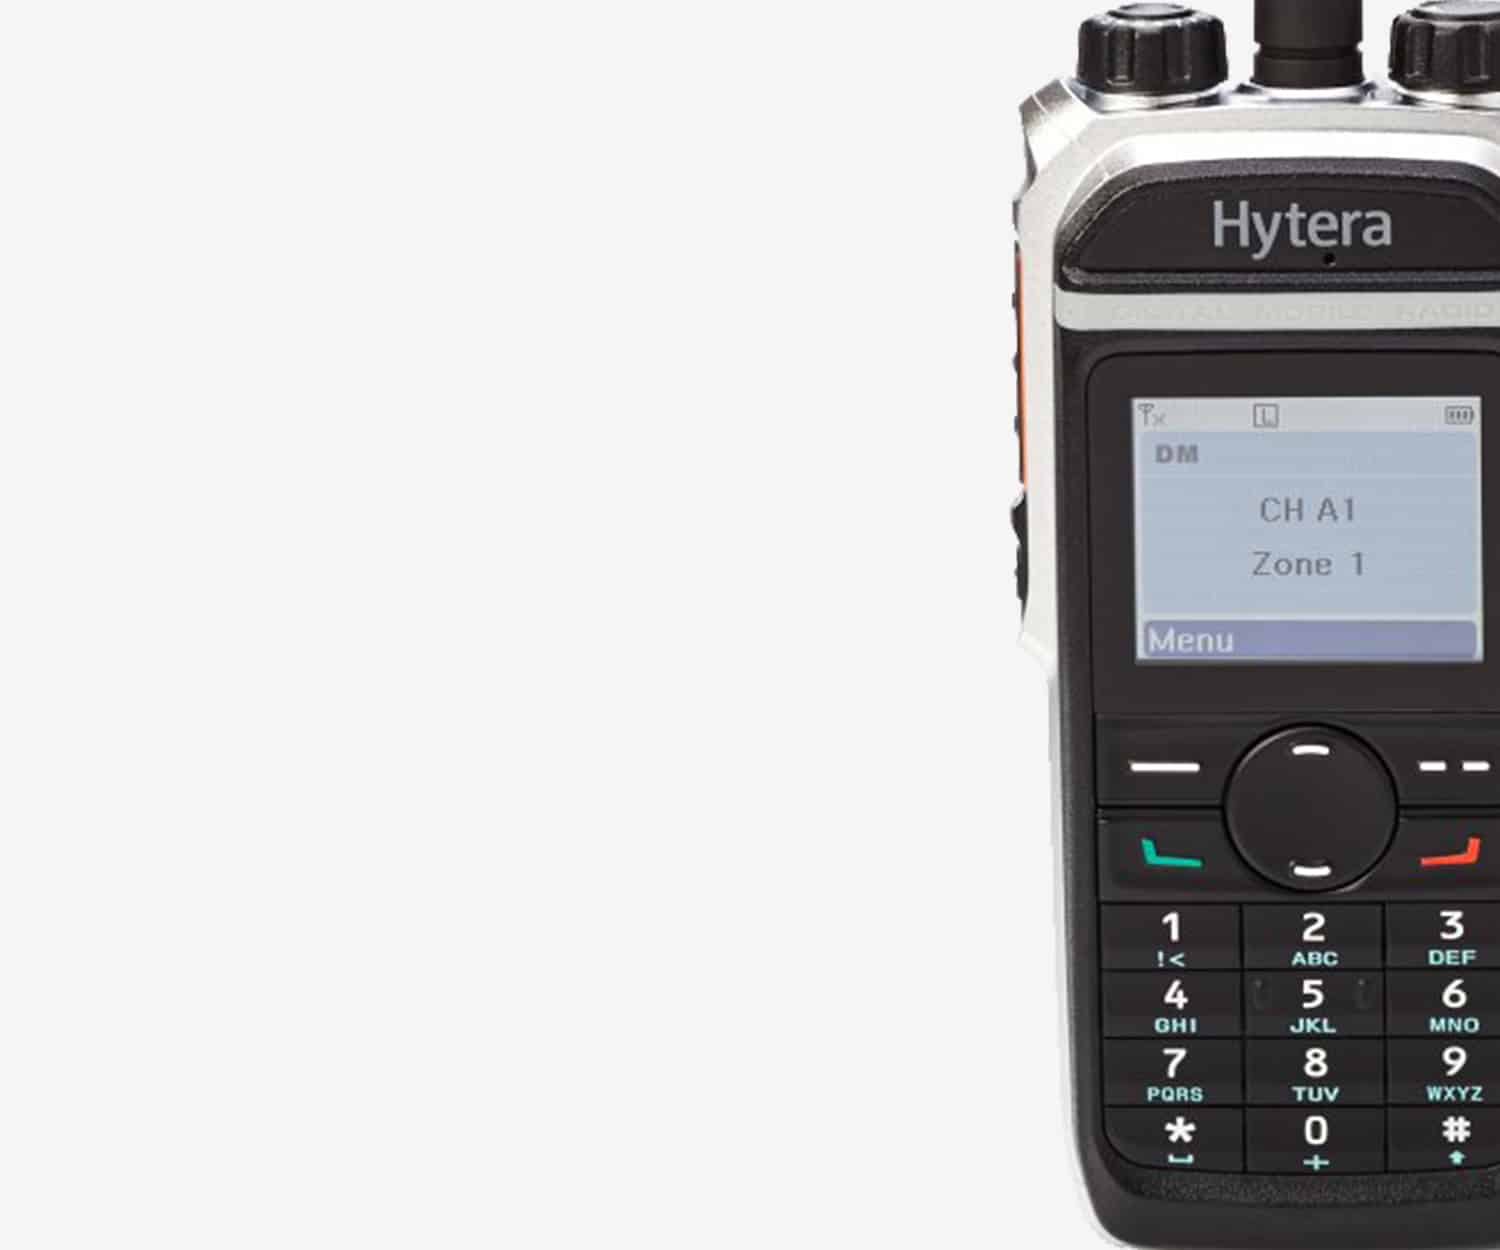 American Airlines Hytera DMR Tier III - Hytera PD685